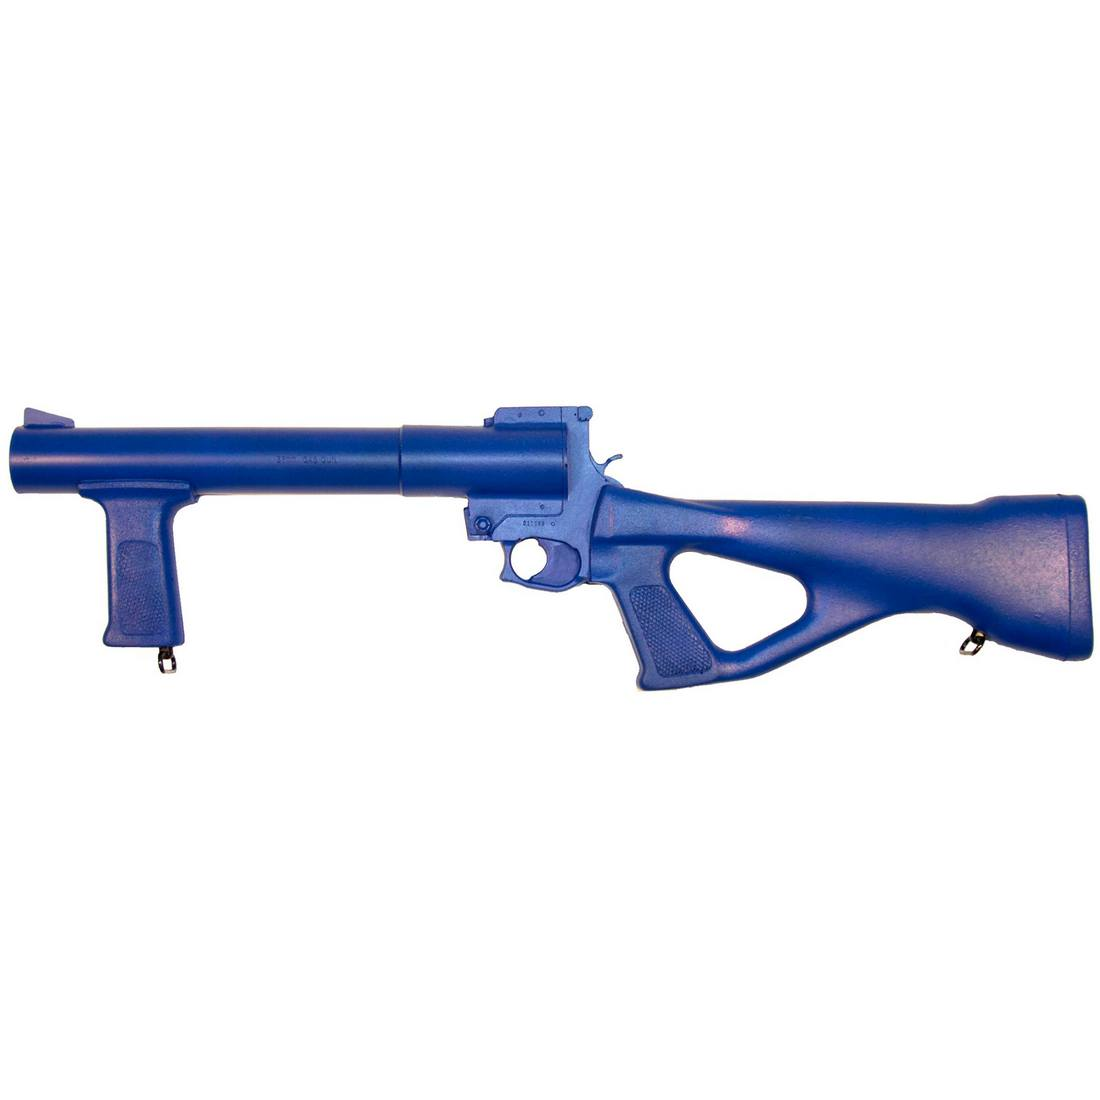 "Blueguns FS37MMGG 37MM Gas Gun w/14"" Barrrel"